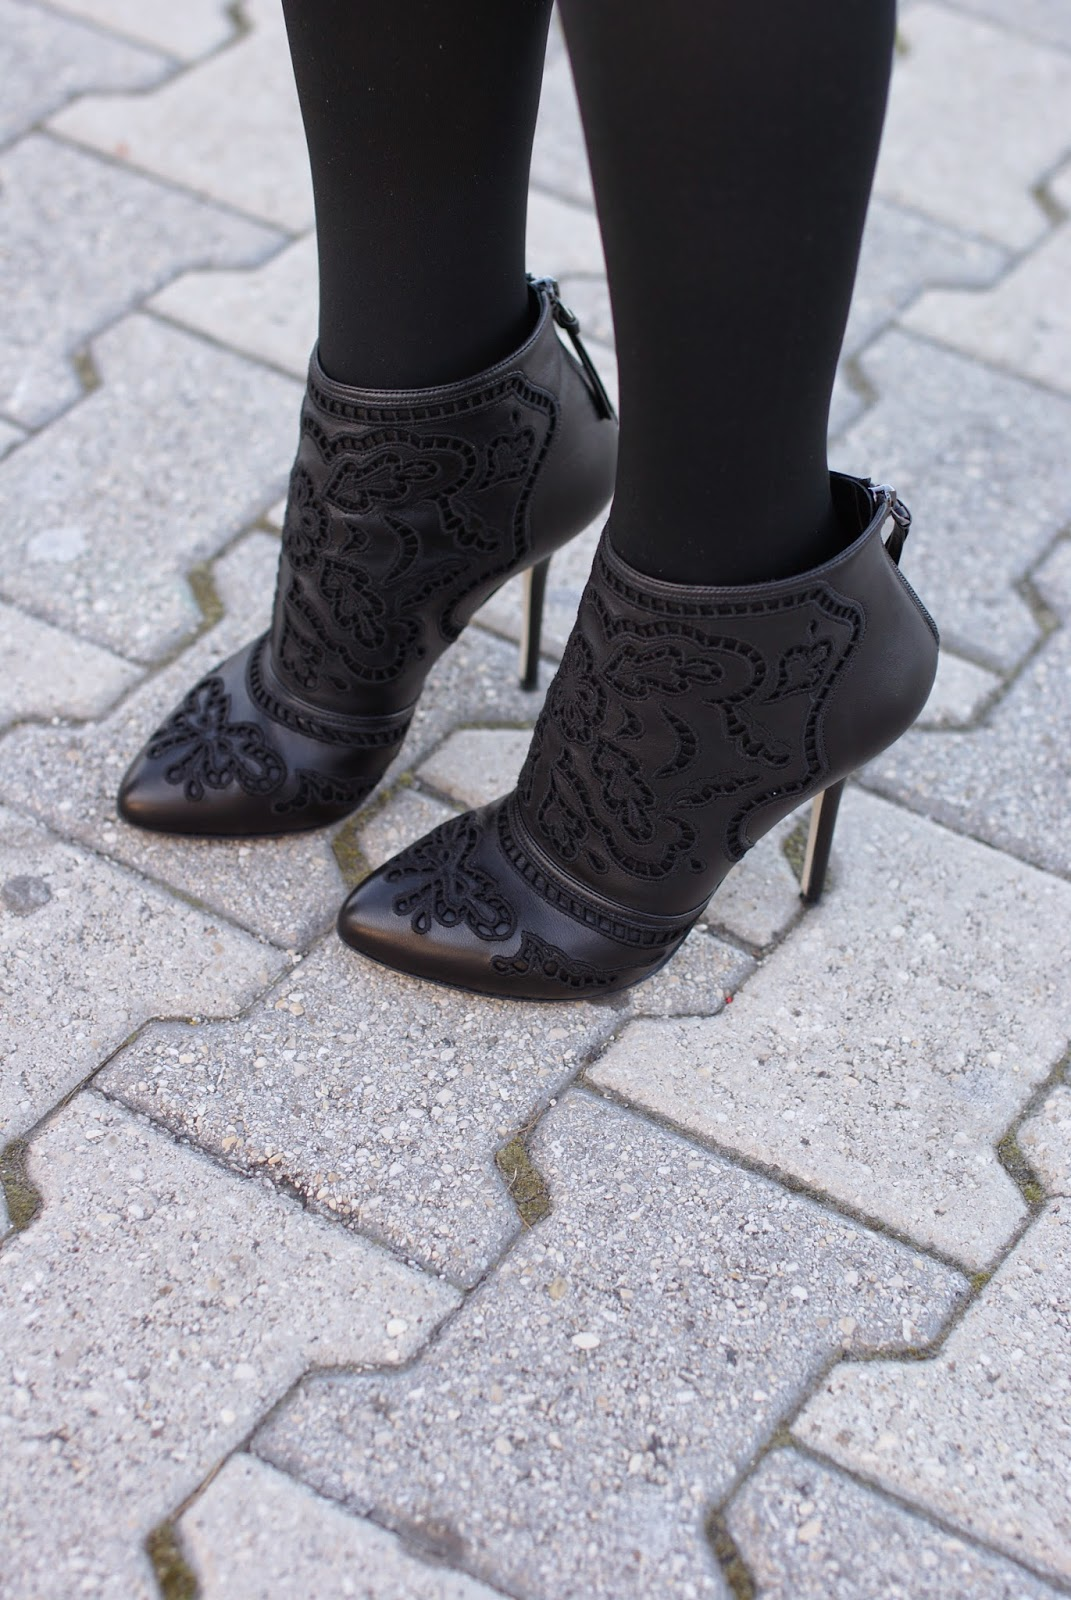 Dolce & Gabbana black leather Coco cut-out ankle boots, Fashion and Cookies fashion blog, fashion blogger italiana